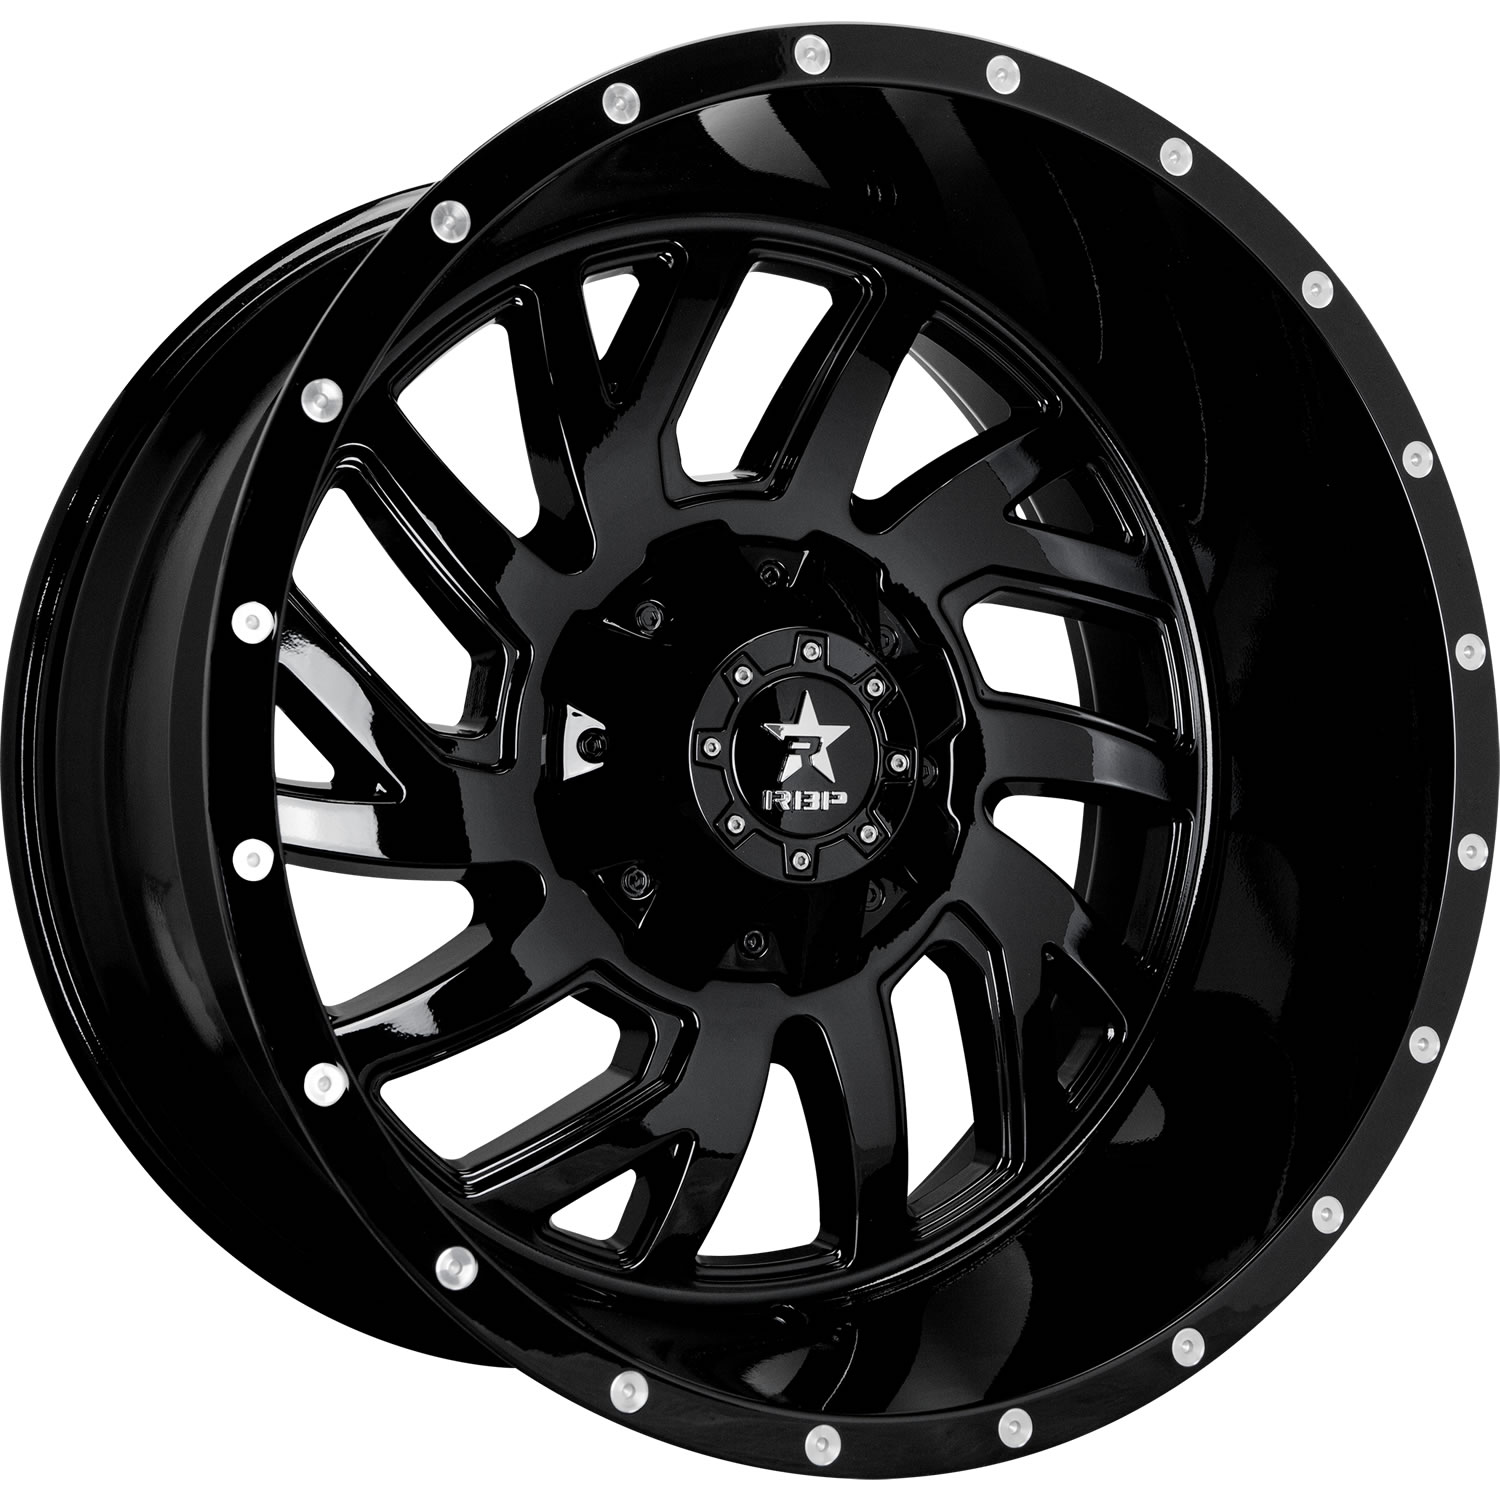 RBP 65R 20x10 +20mm | 65R 2010 83+20FB